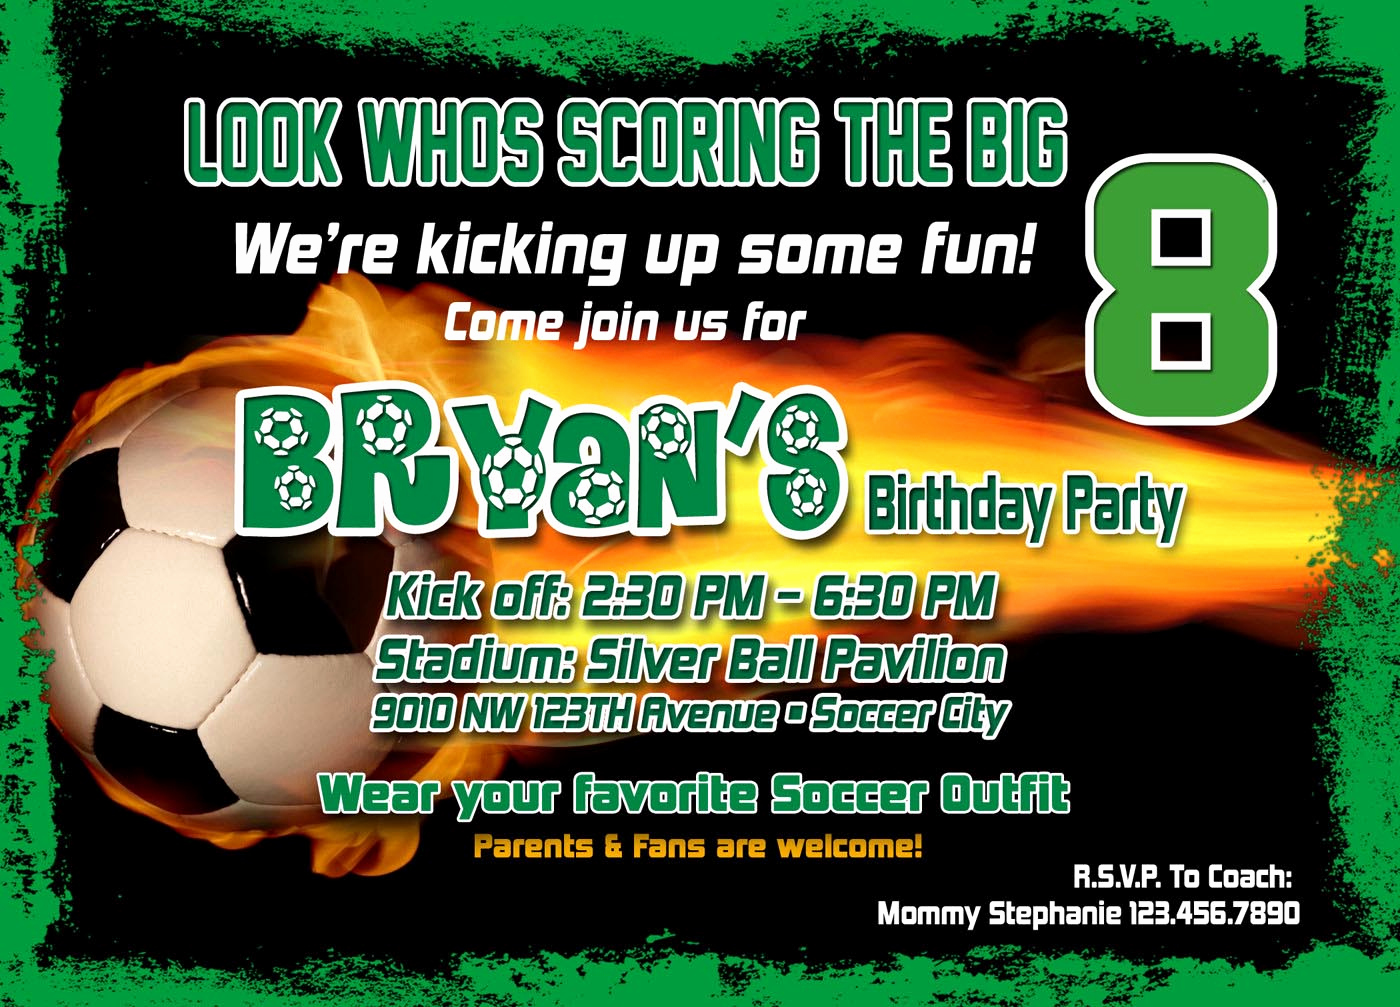 Soccer Invitation Template Free New soccer Birthday Party Invitation Template